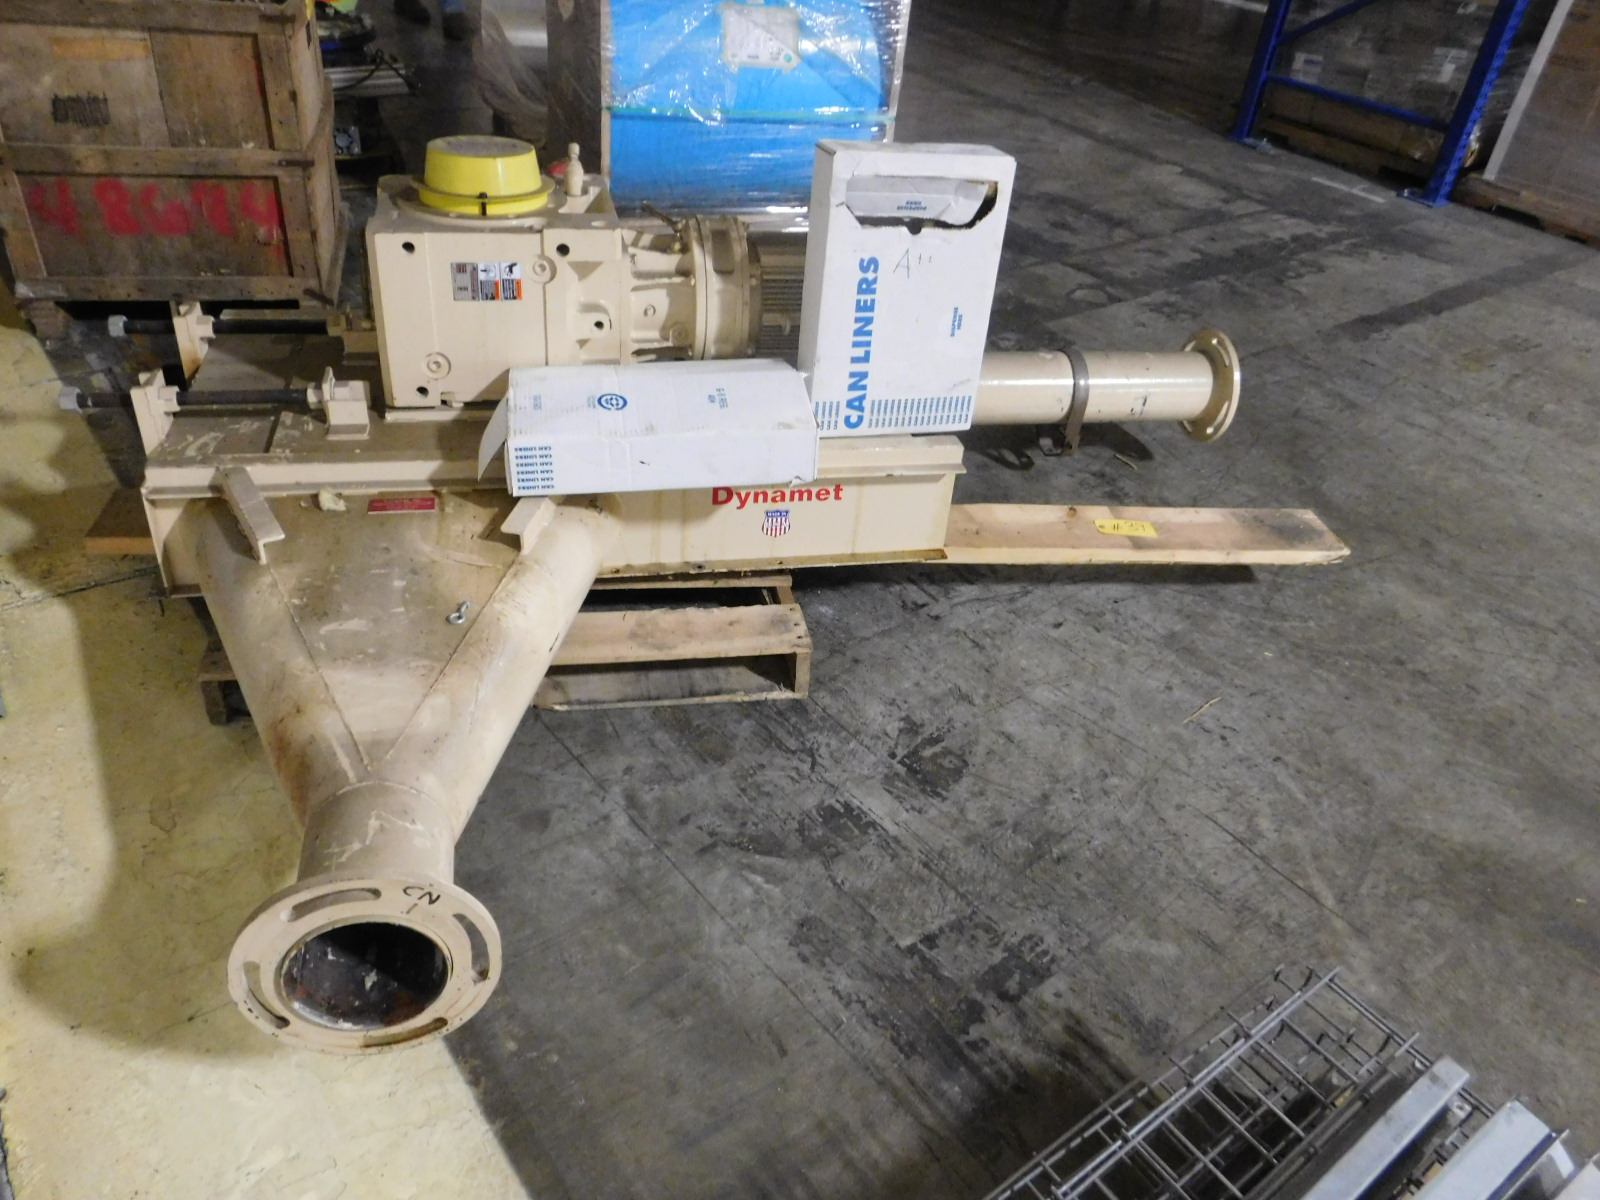 Lot 39 - Dynamet /Buddybox Gear Motor LVYMS10-3D165YA, Valve and Chain Drive -Comes with a SM-bevel